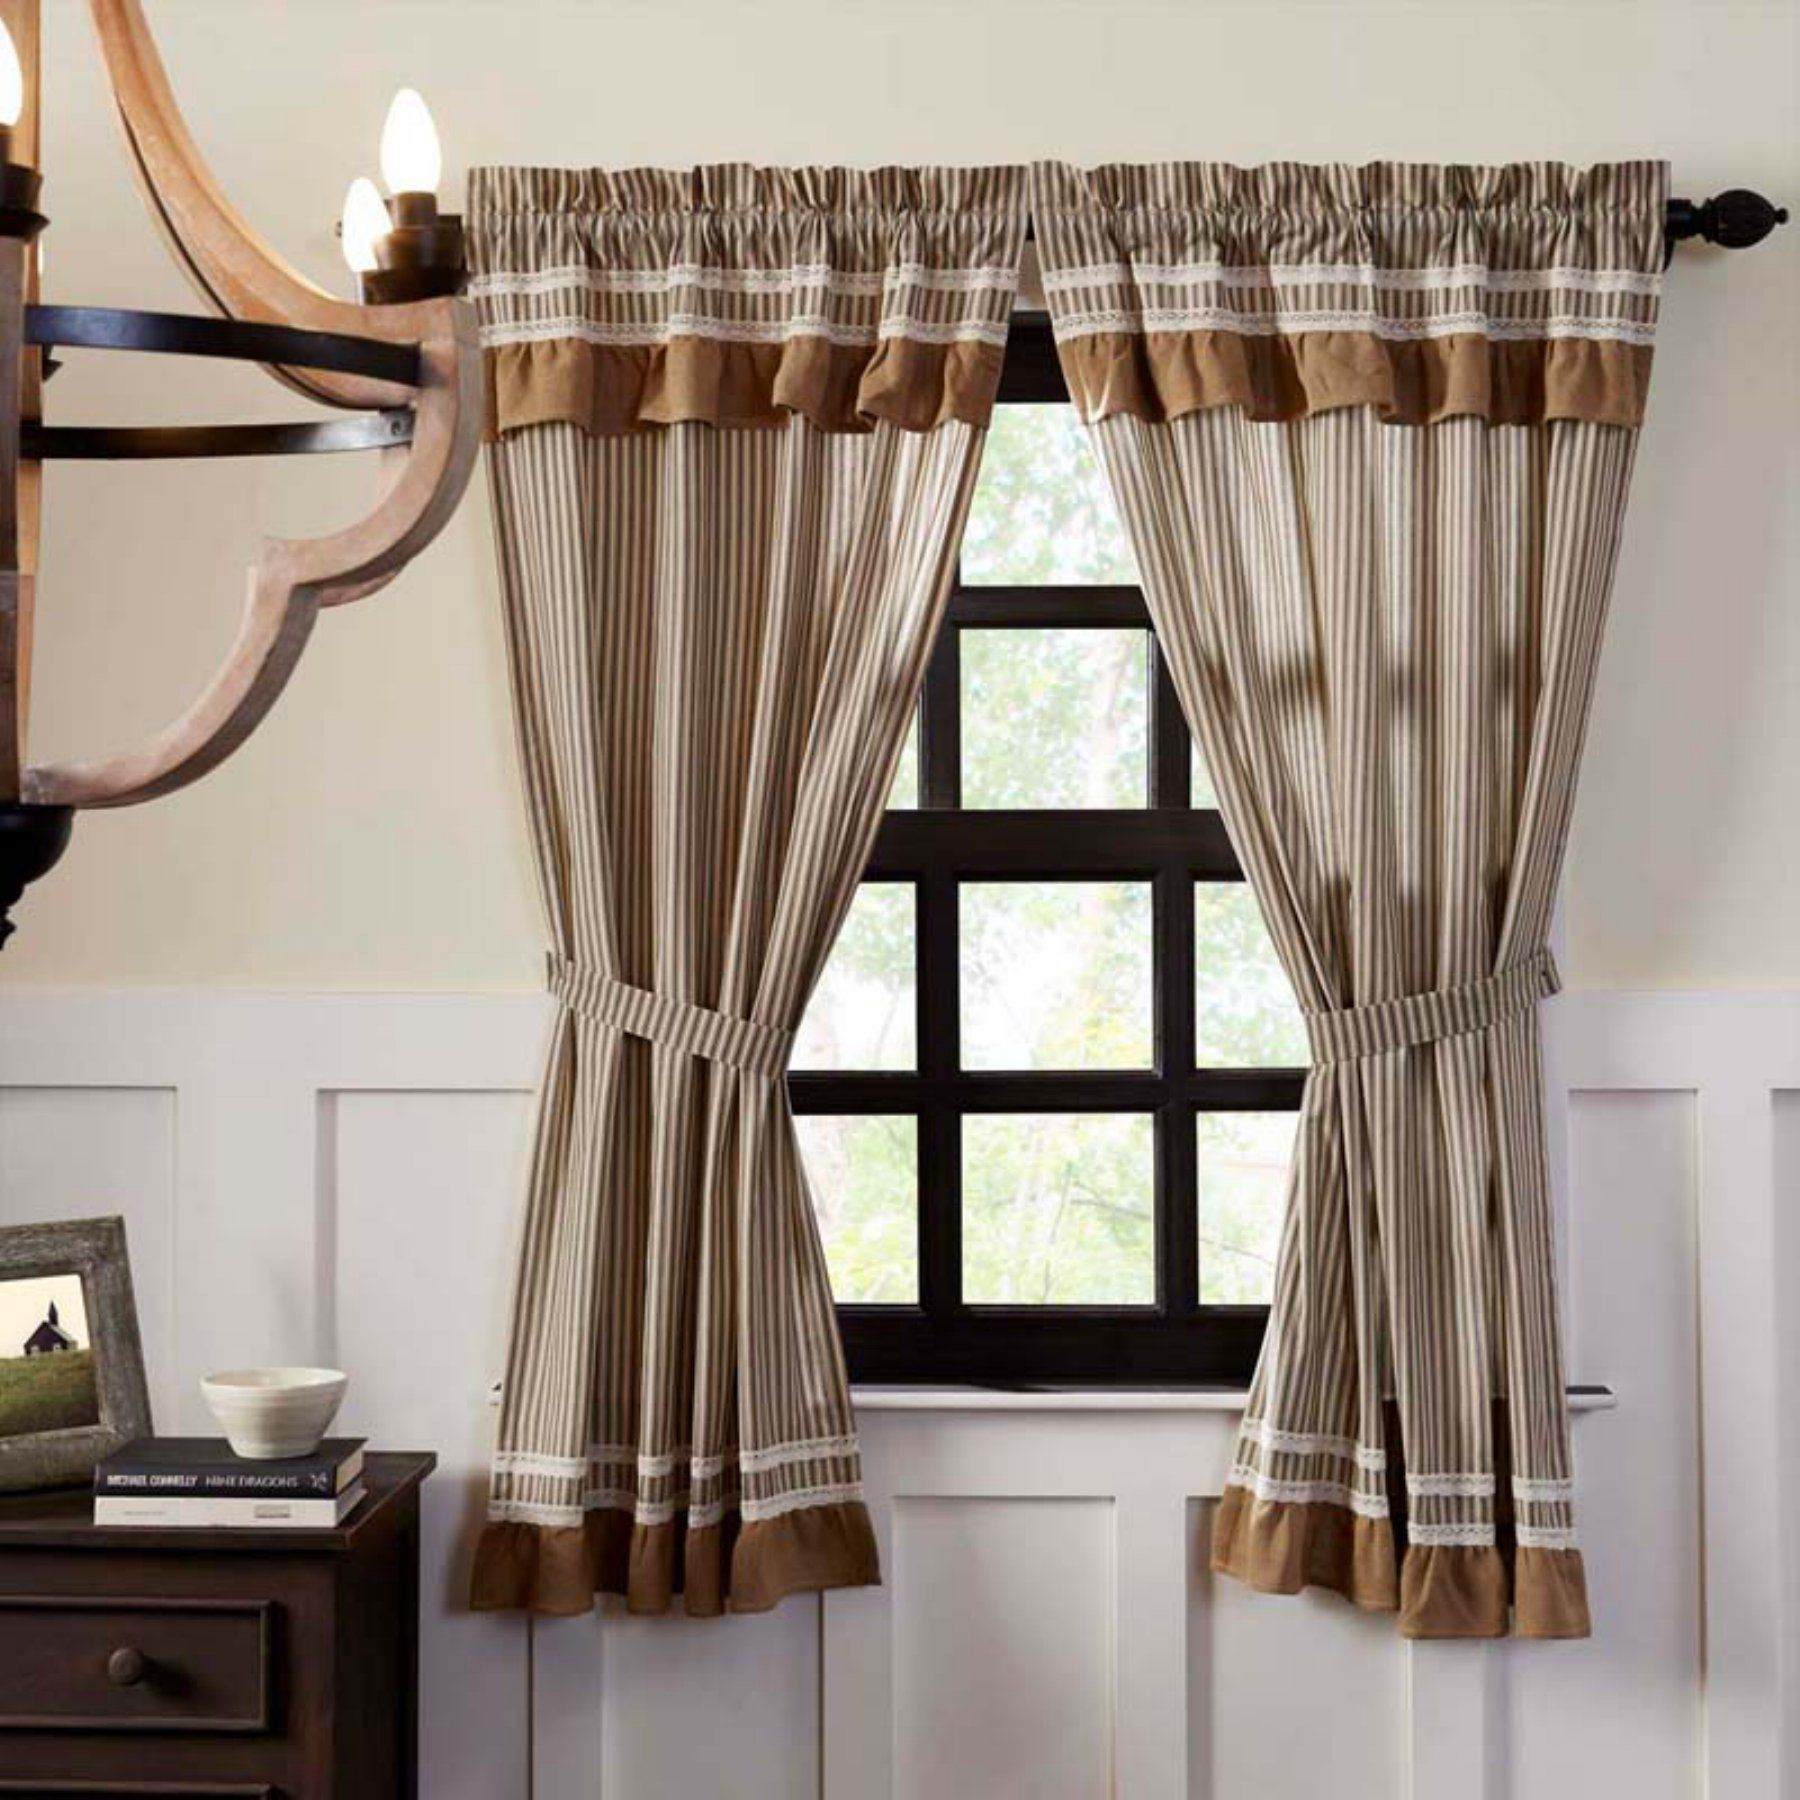 Fine 8 Simple Tricks White Curtains Window Curtains Behind Couch Ncnpc Chair Design For Home Ncnpcorg